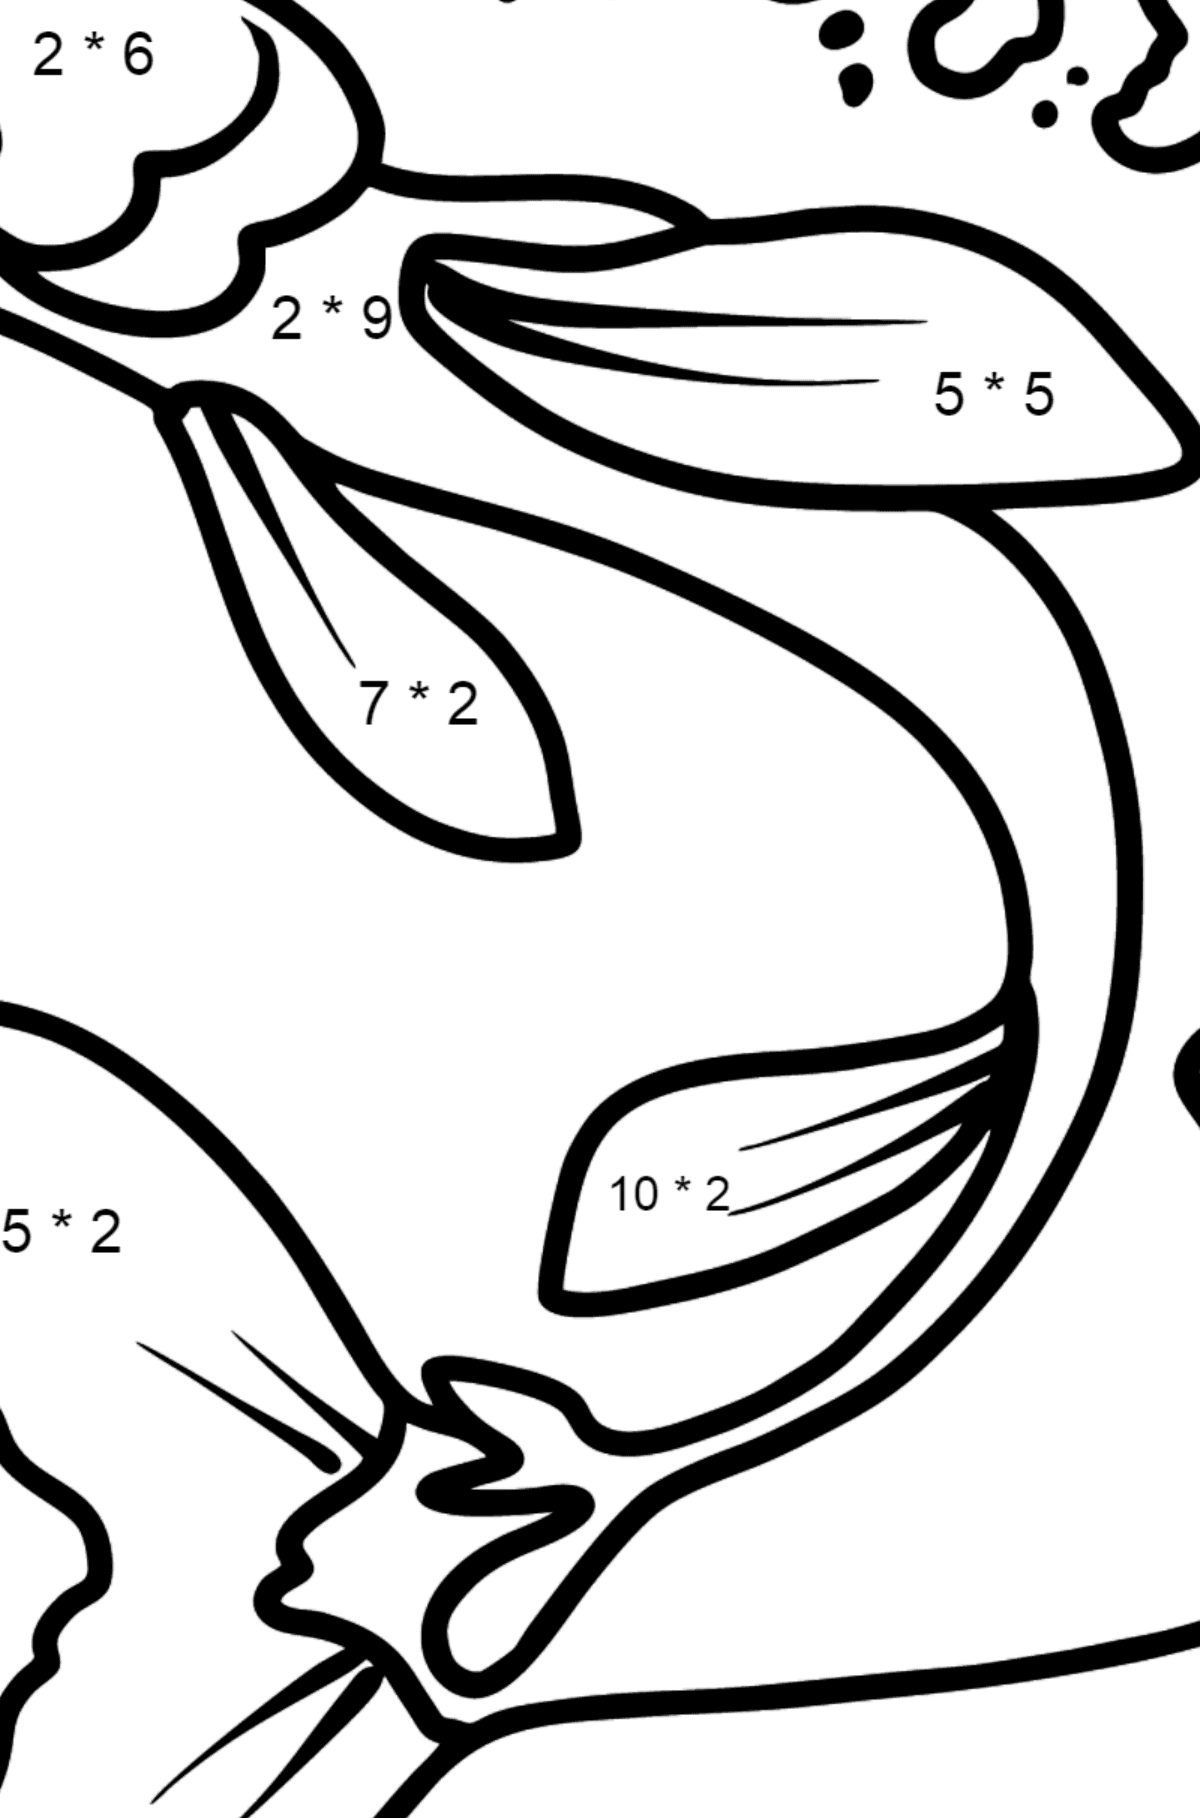 Pike coloring page - Math Coloring - Multiplication for Kids